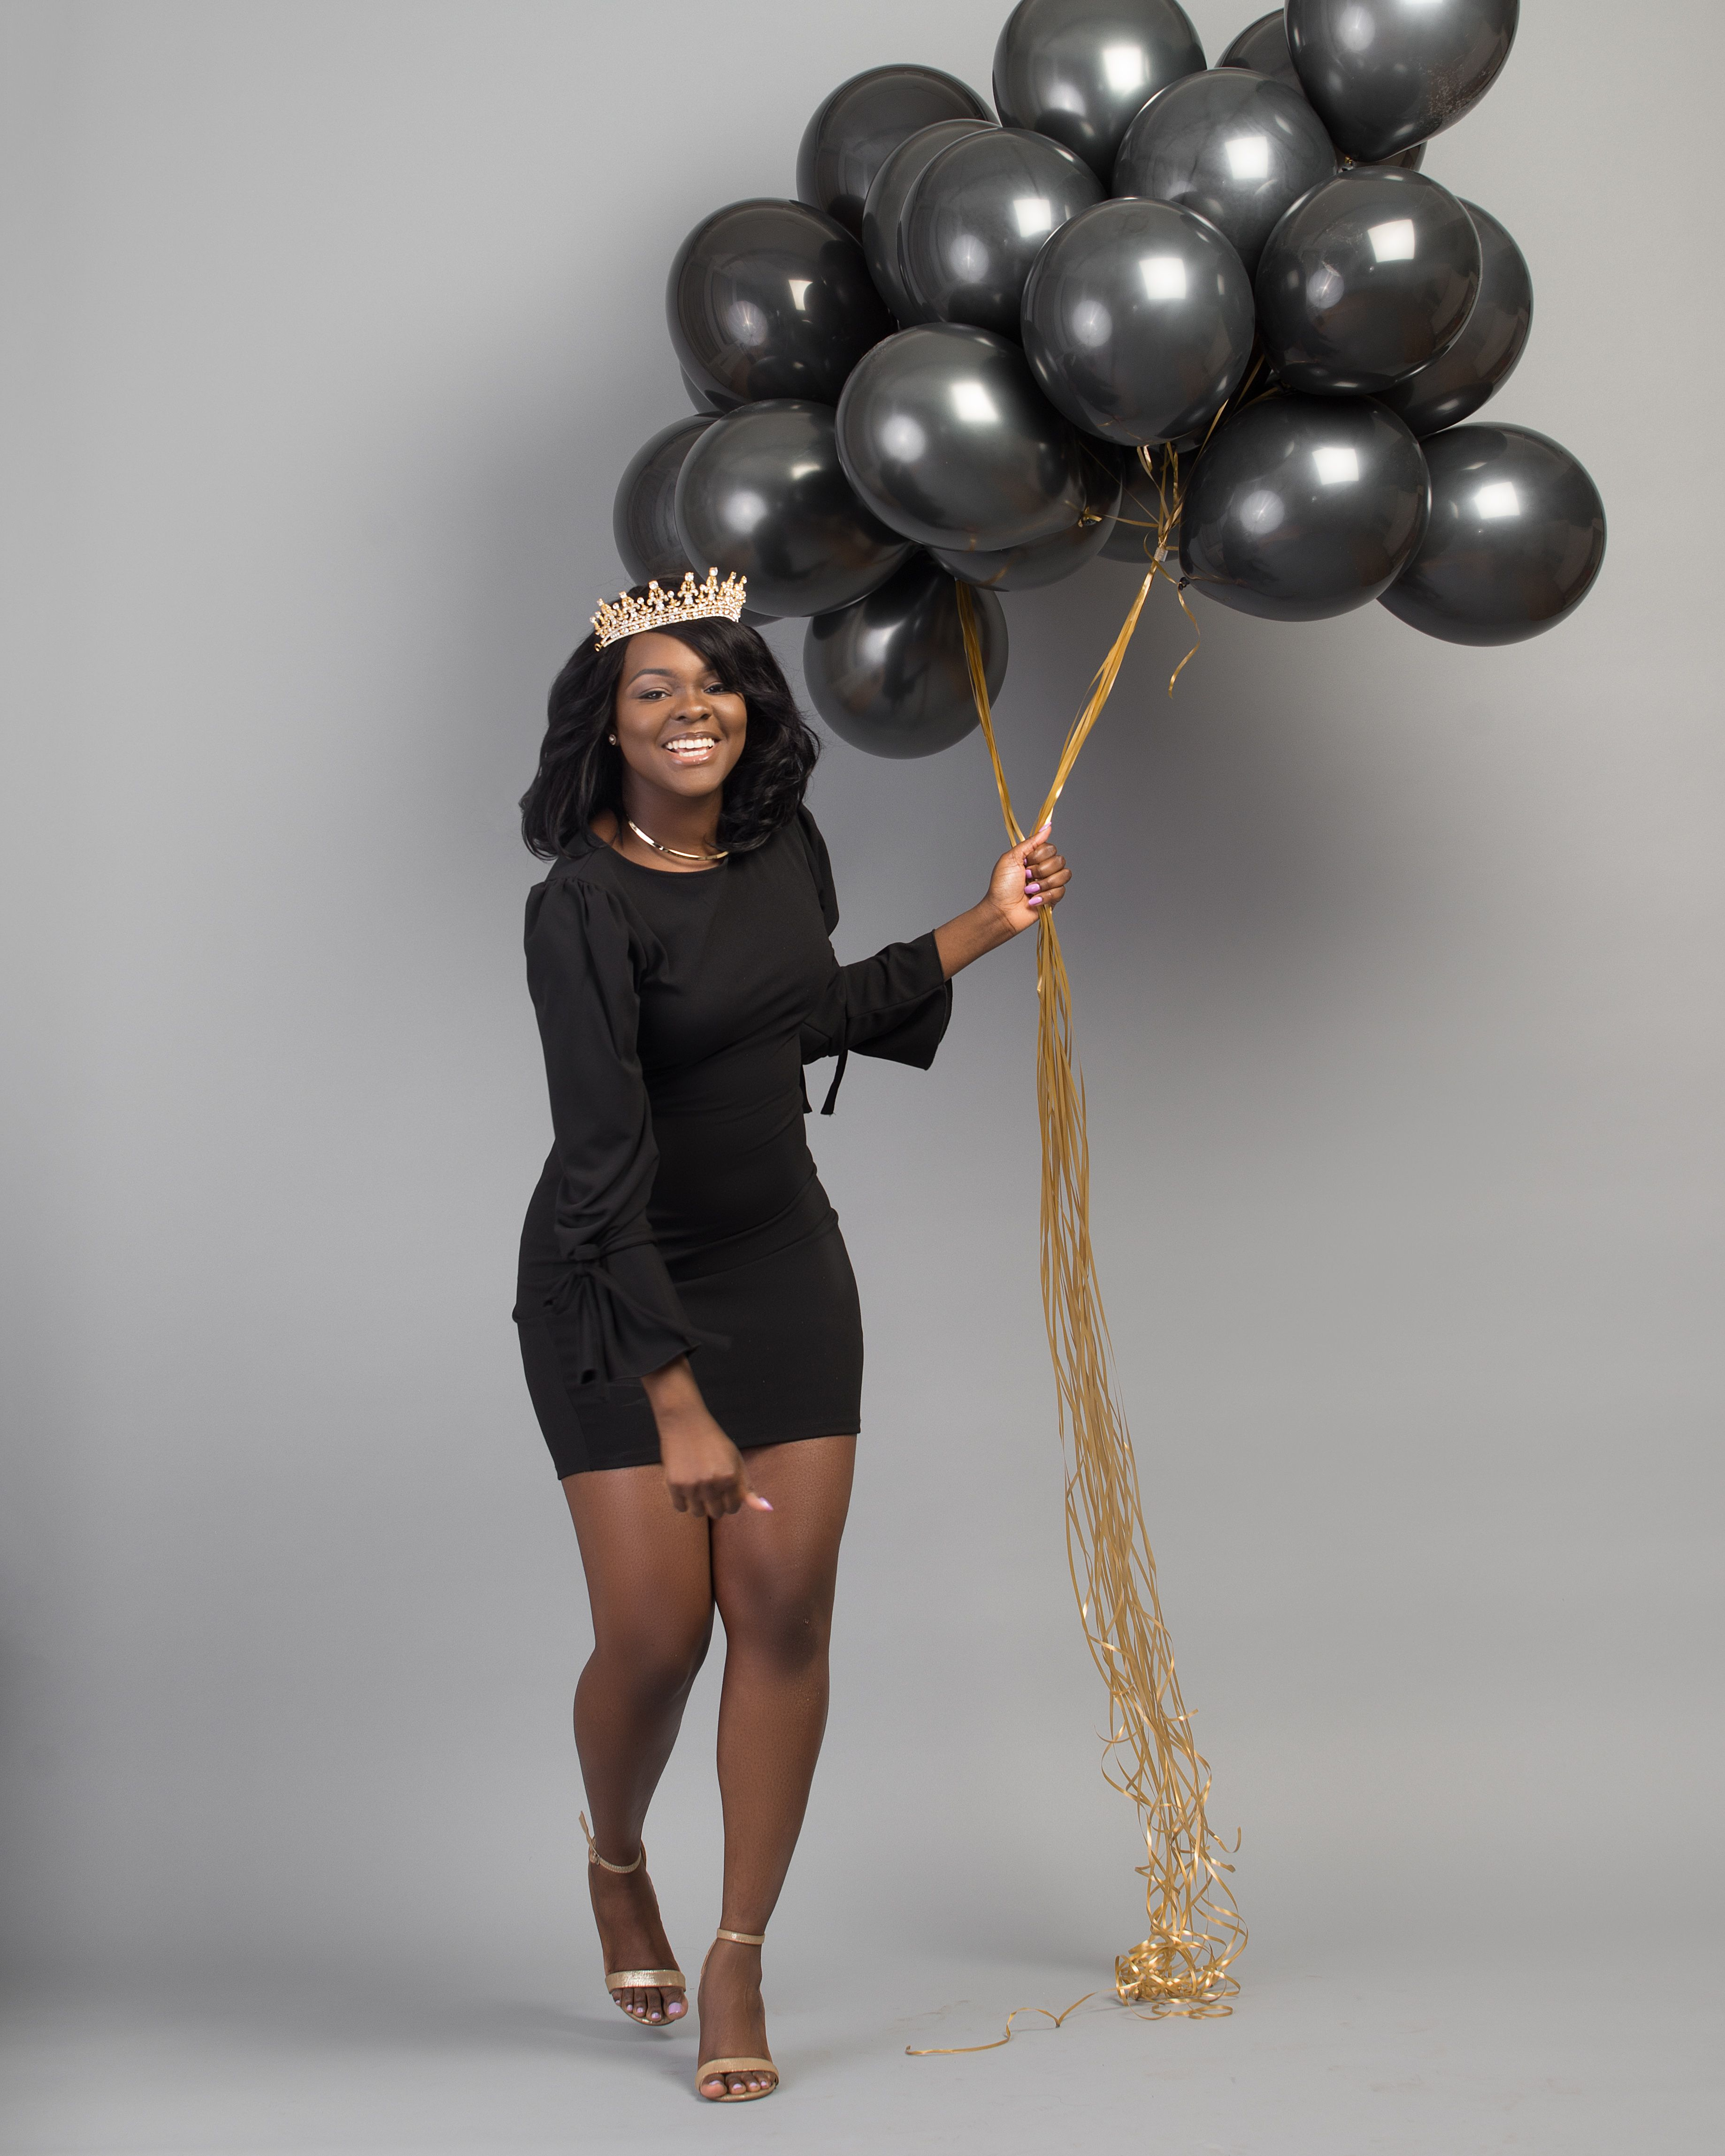 622d48c5f16 All Black with a touch of Gold 25th Birthday PhotoShoot